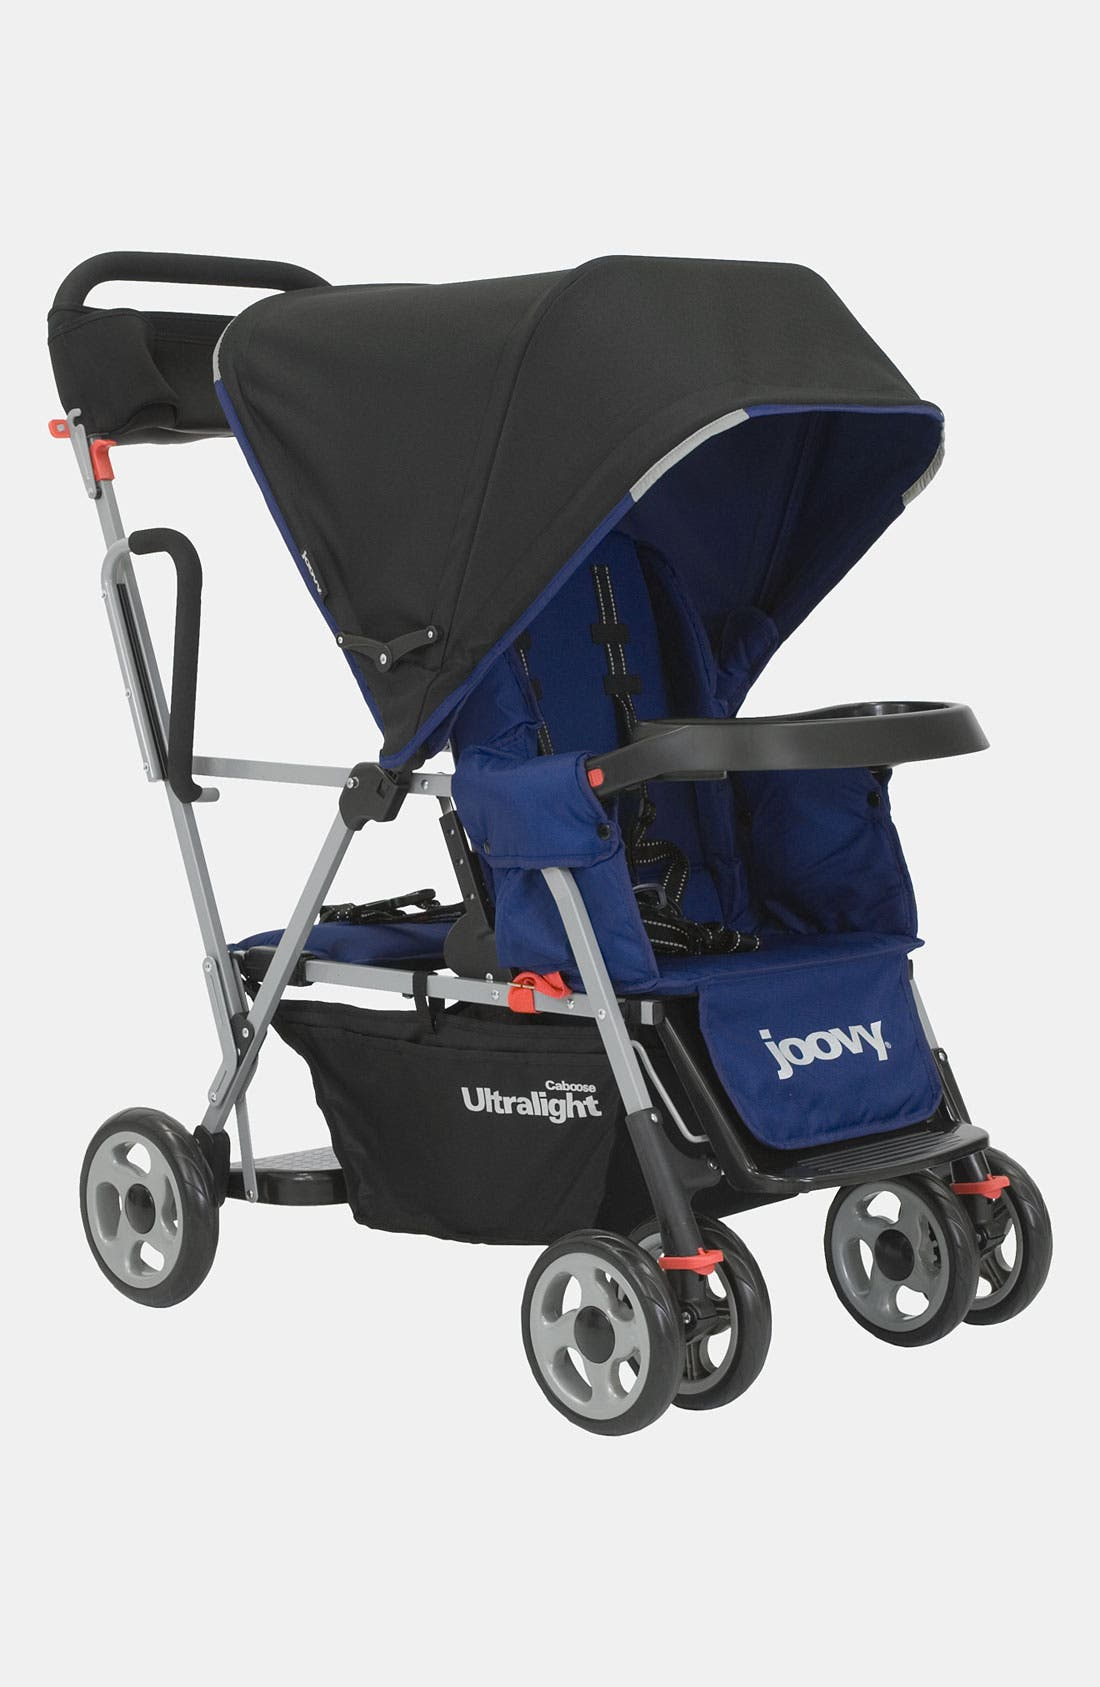 Main Image - Joovy 'Caboose Ultralight - Stand-On Tandem' Stroller